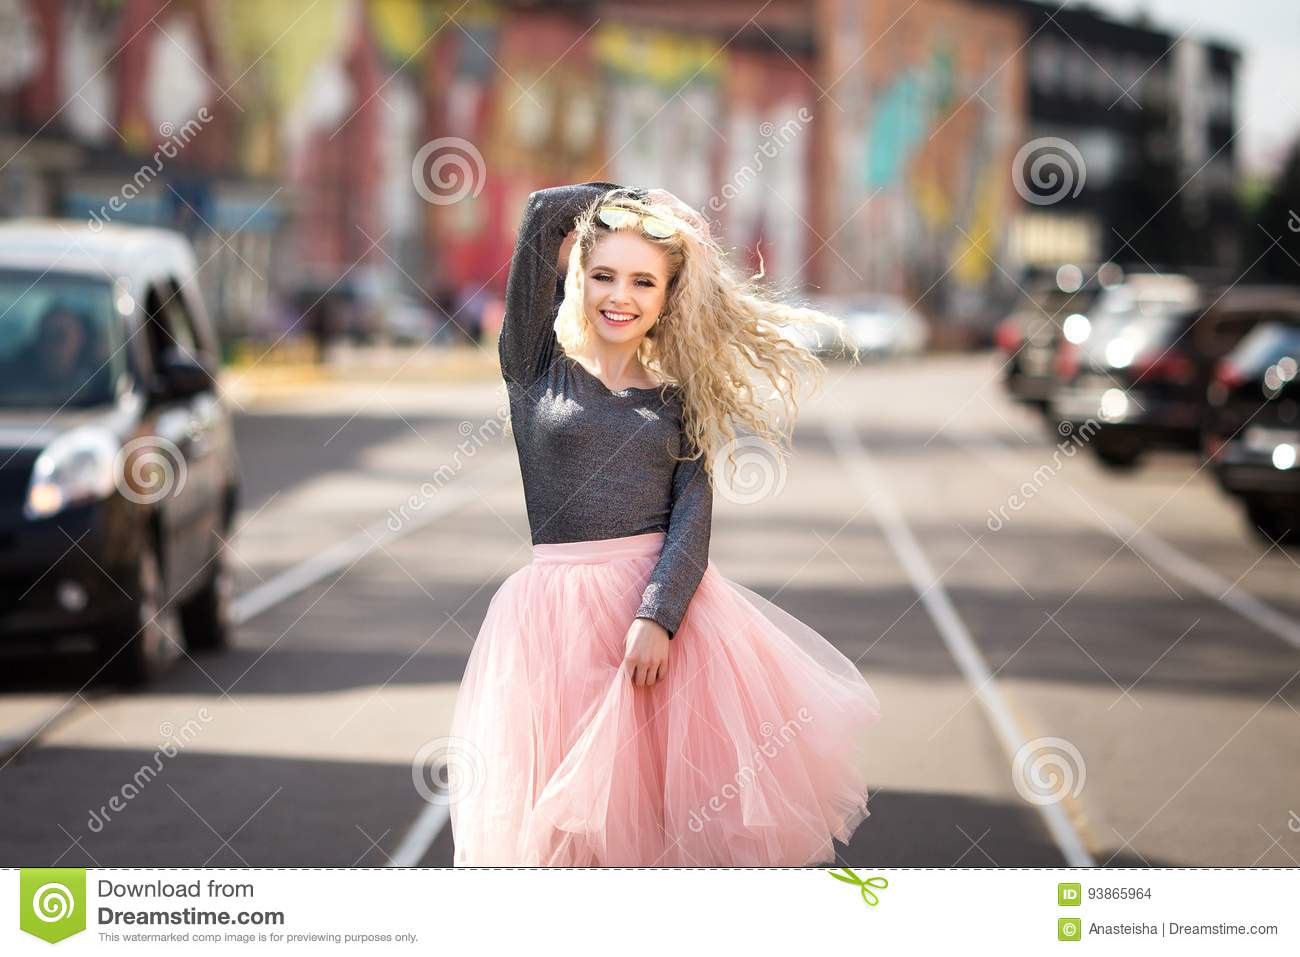 5d10c876322 Summer sunny lifestyle fashion portrait of young stylish hipster woman  walking on the street